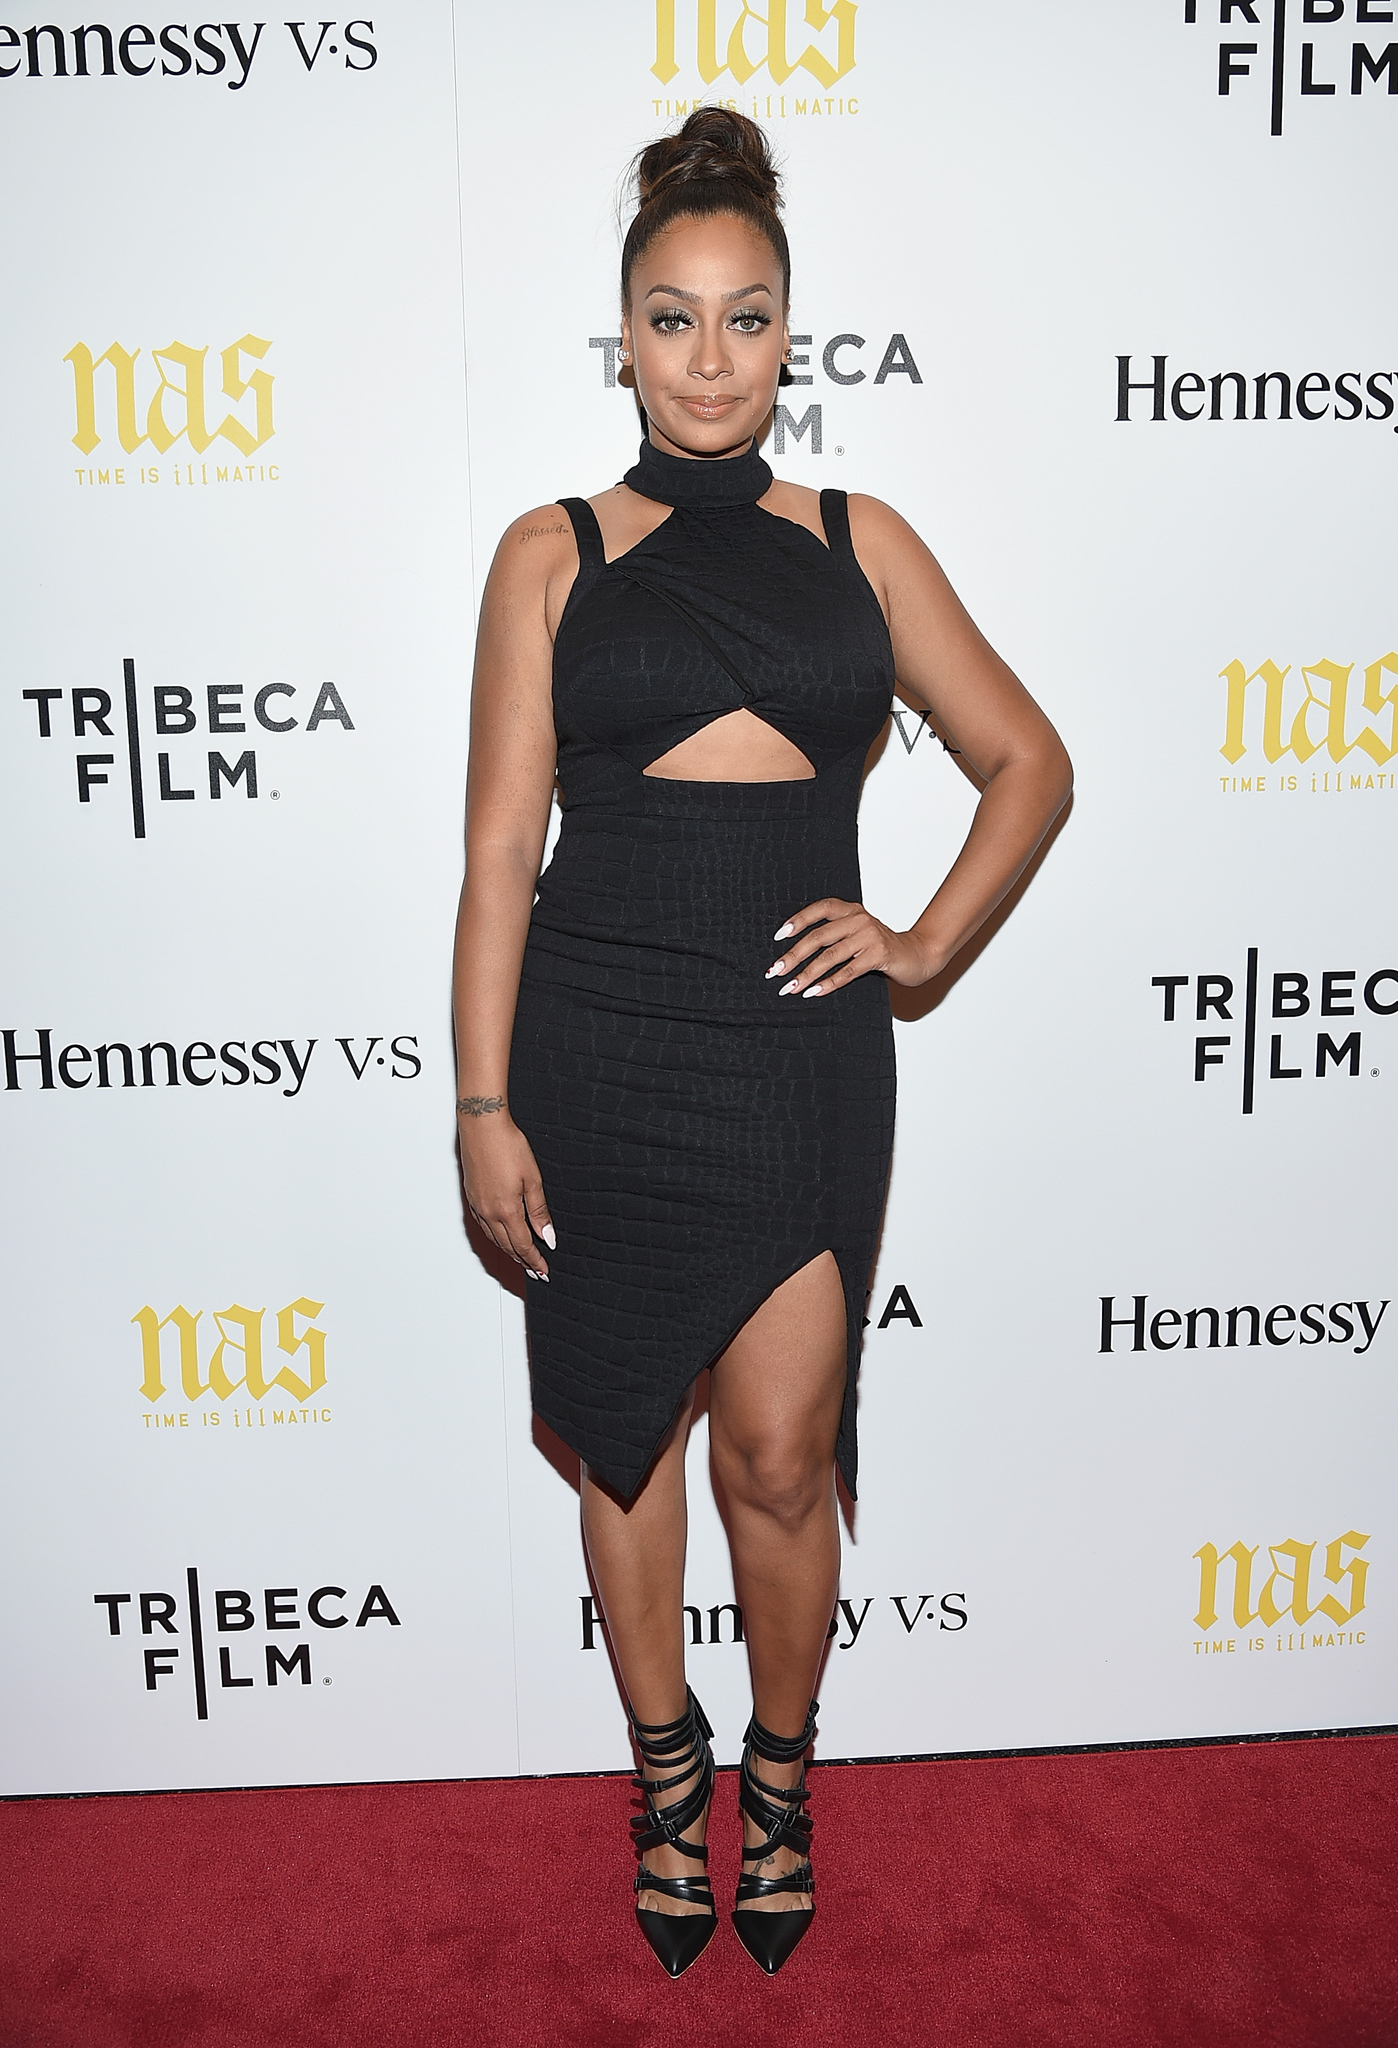 La La Anthony at an event for Time Is Illmatic (2014)